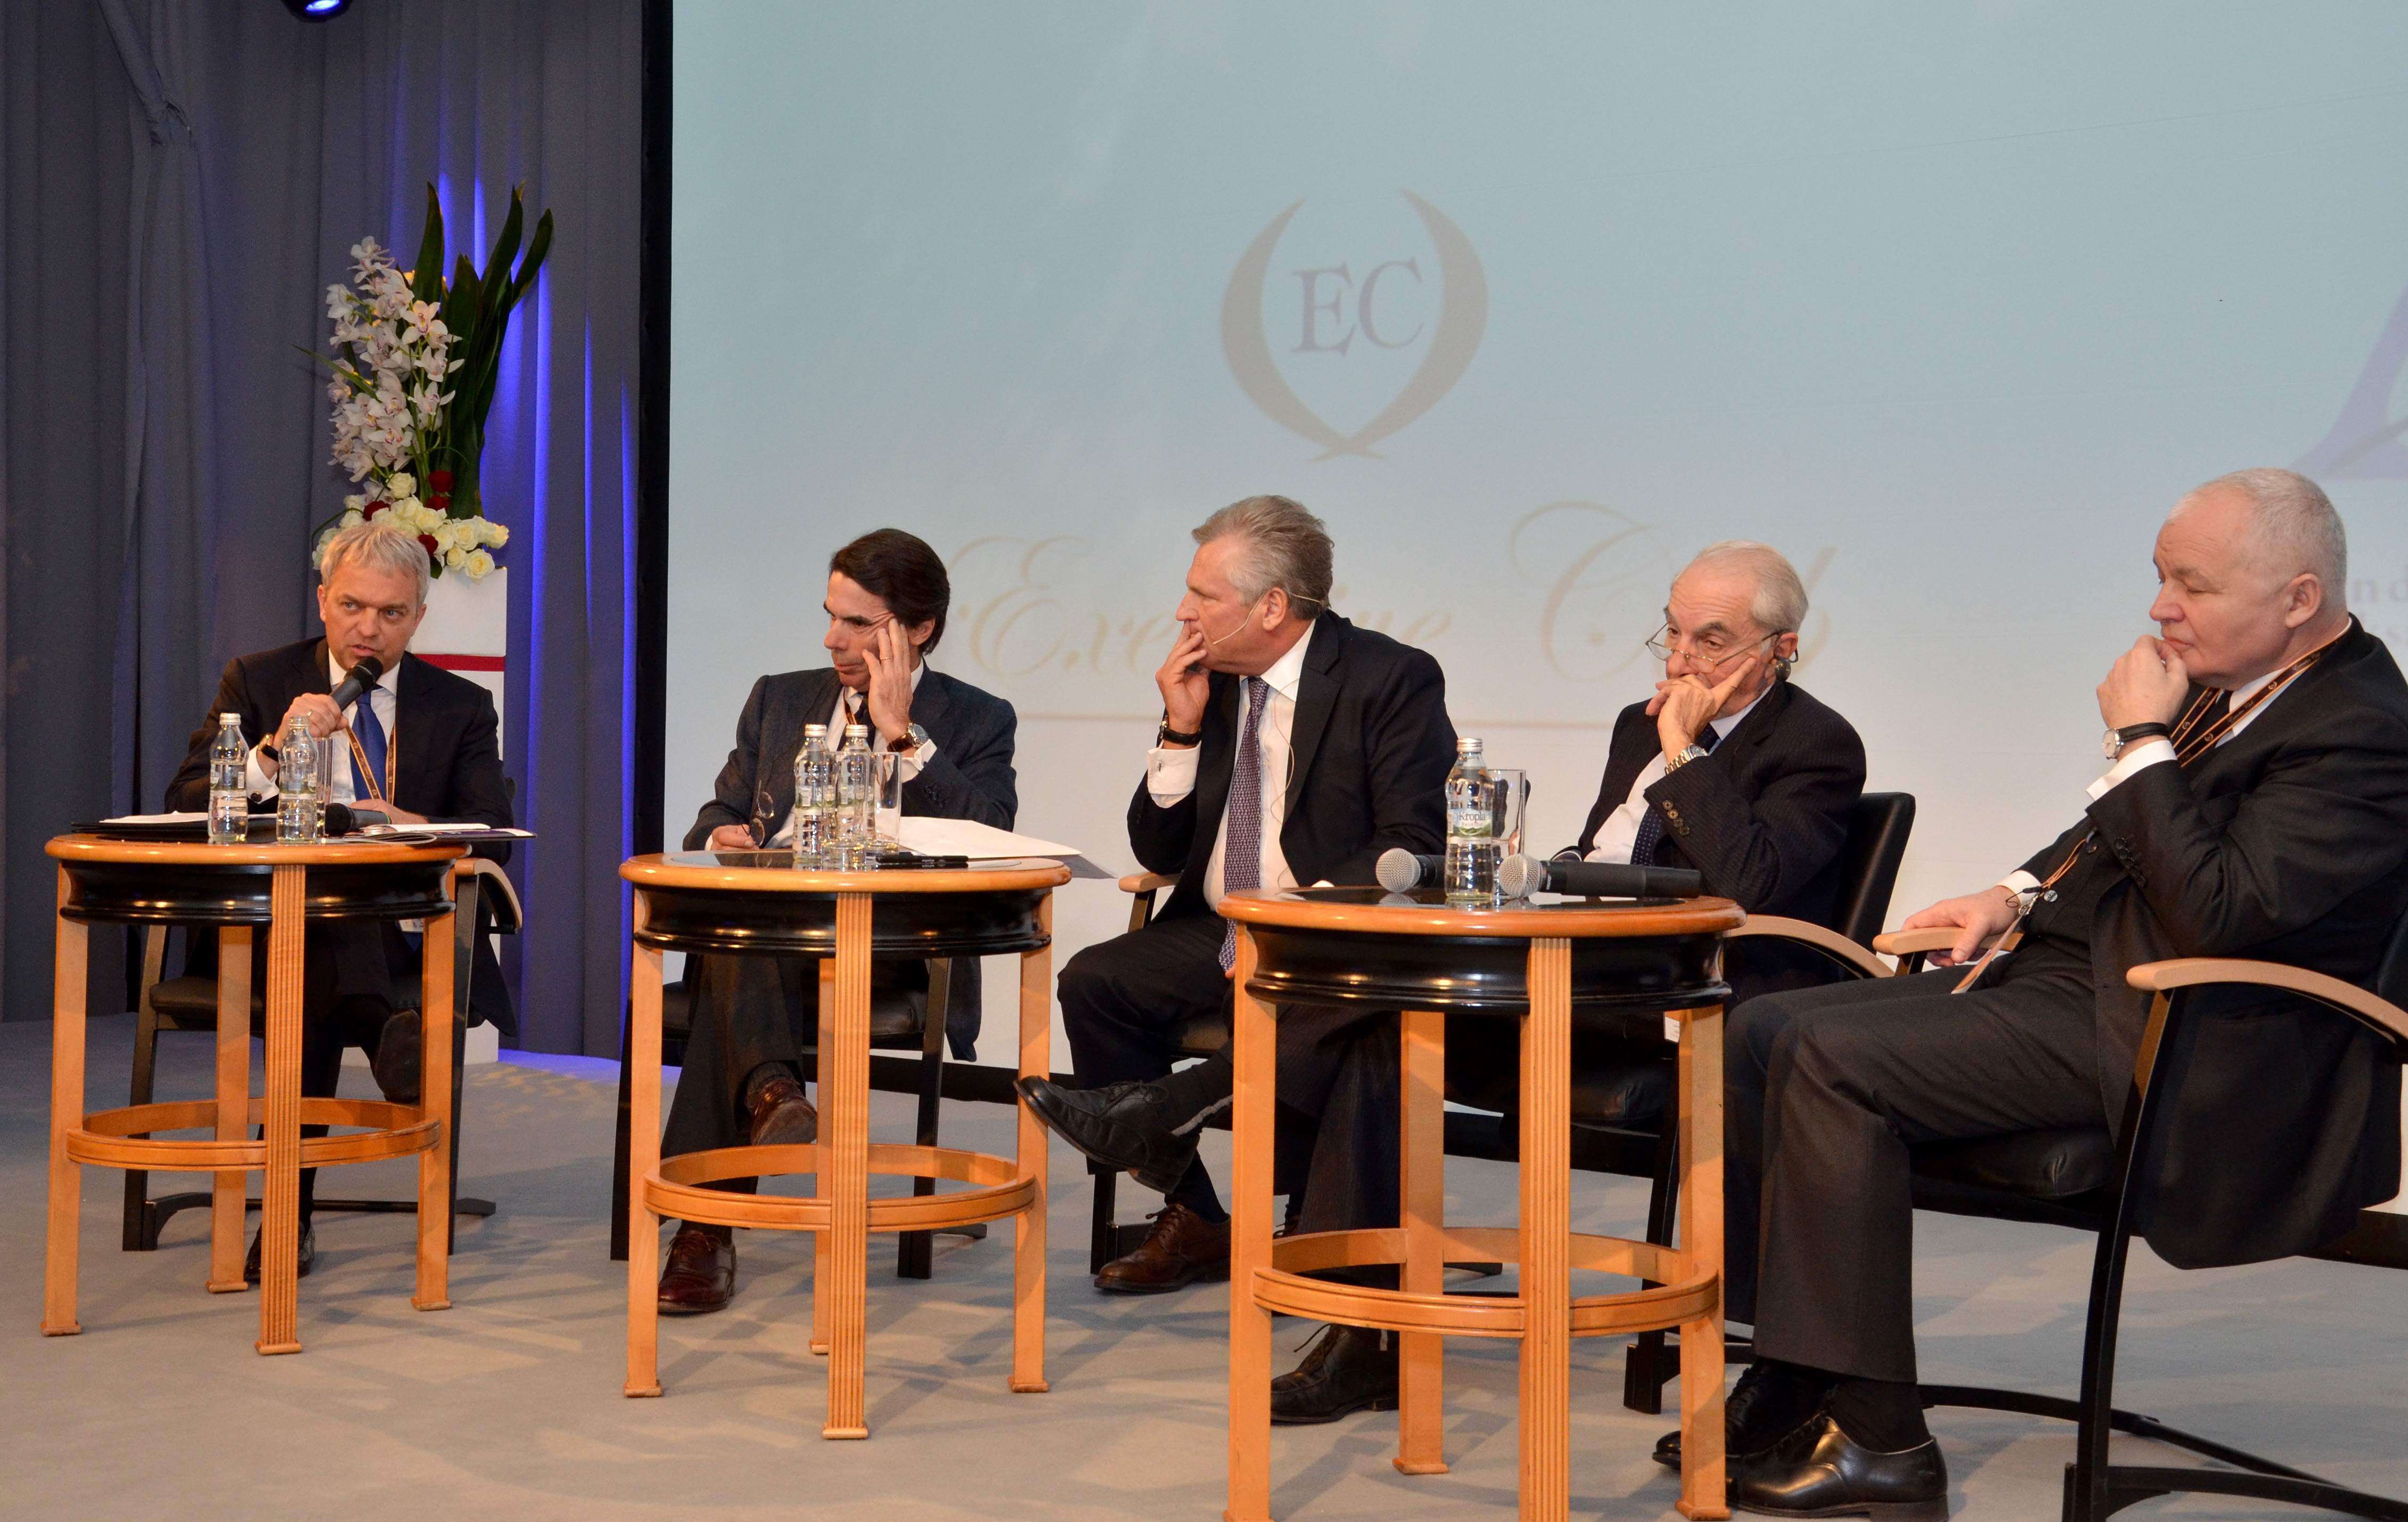 European Executive Forum - Leadership of the past and leadership of the future